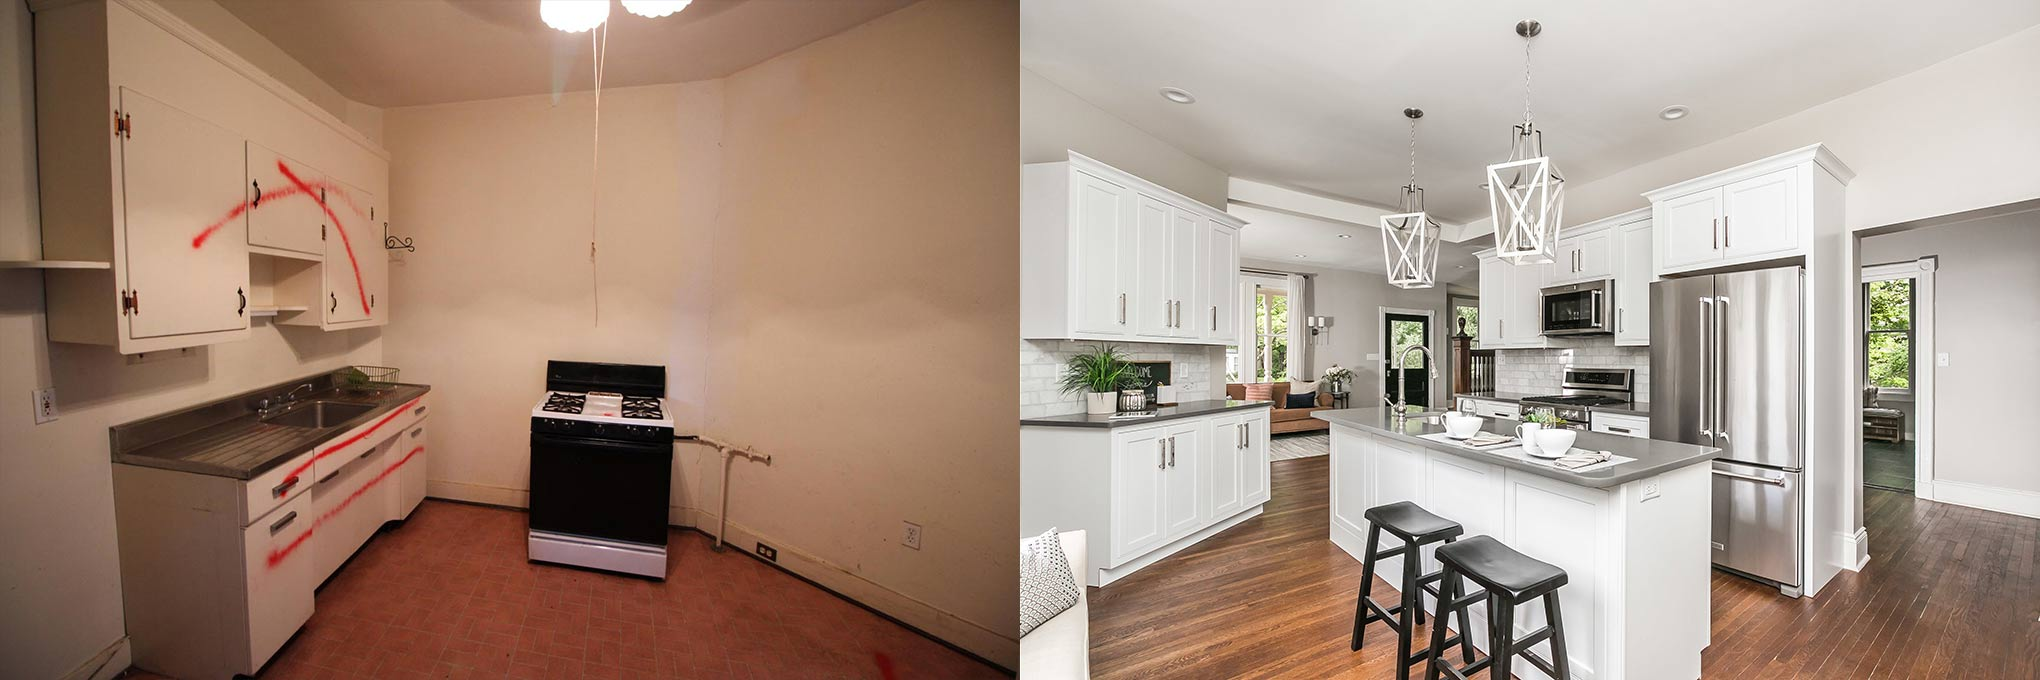 before and after of kitchen on seminary ave baltimore